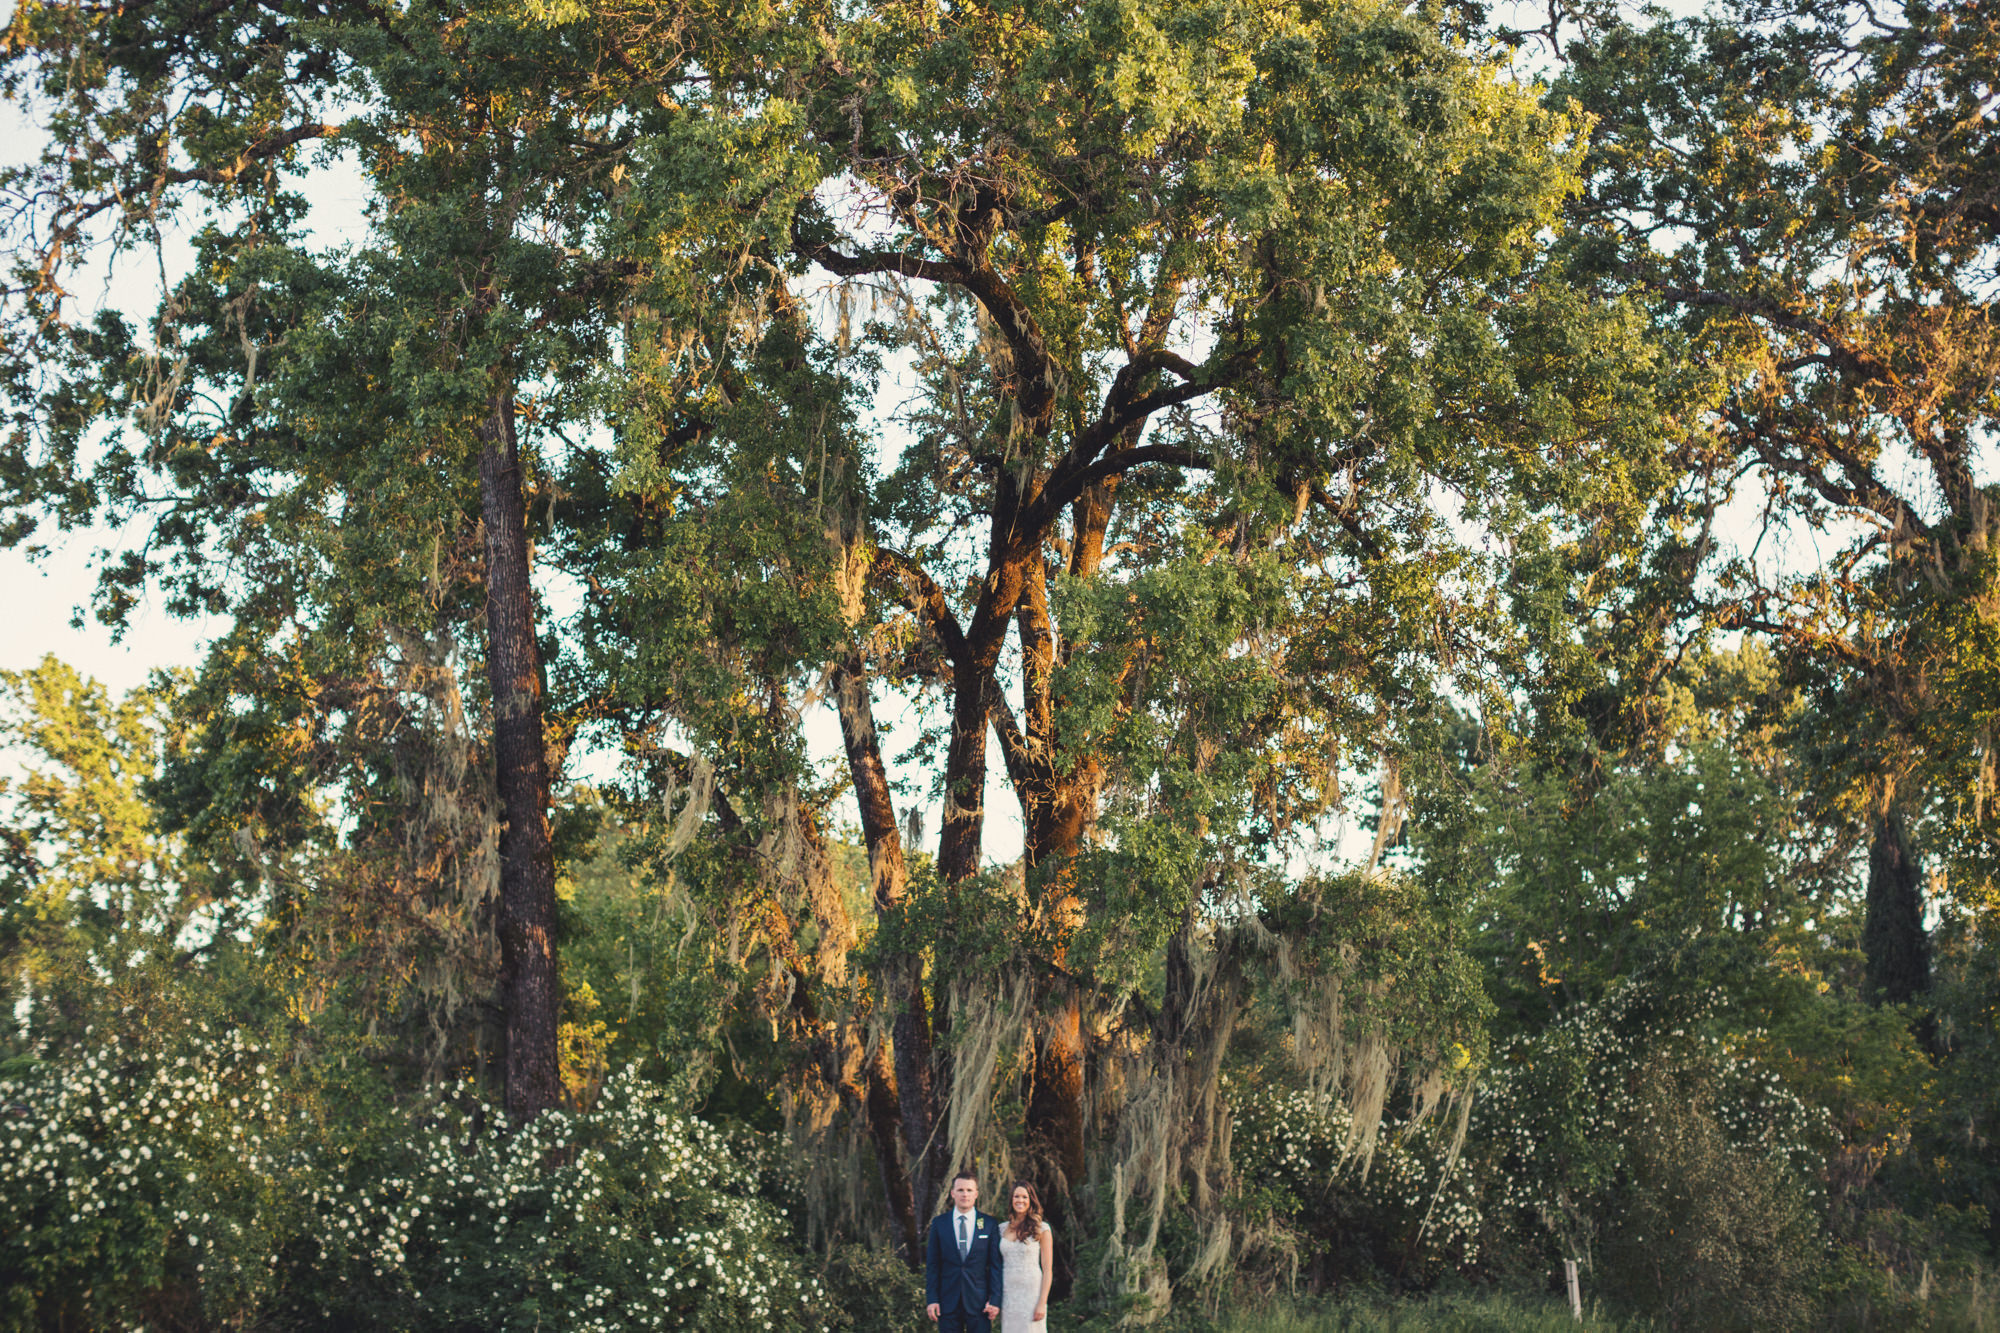 Wedding in Campovida @Anne-Claire Brun 133